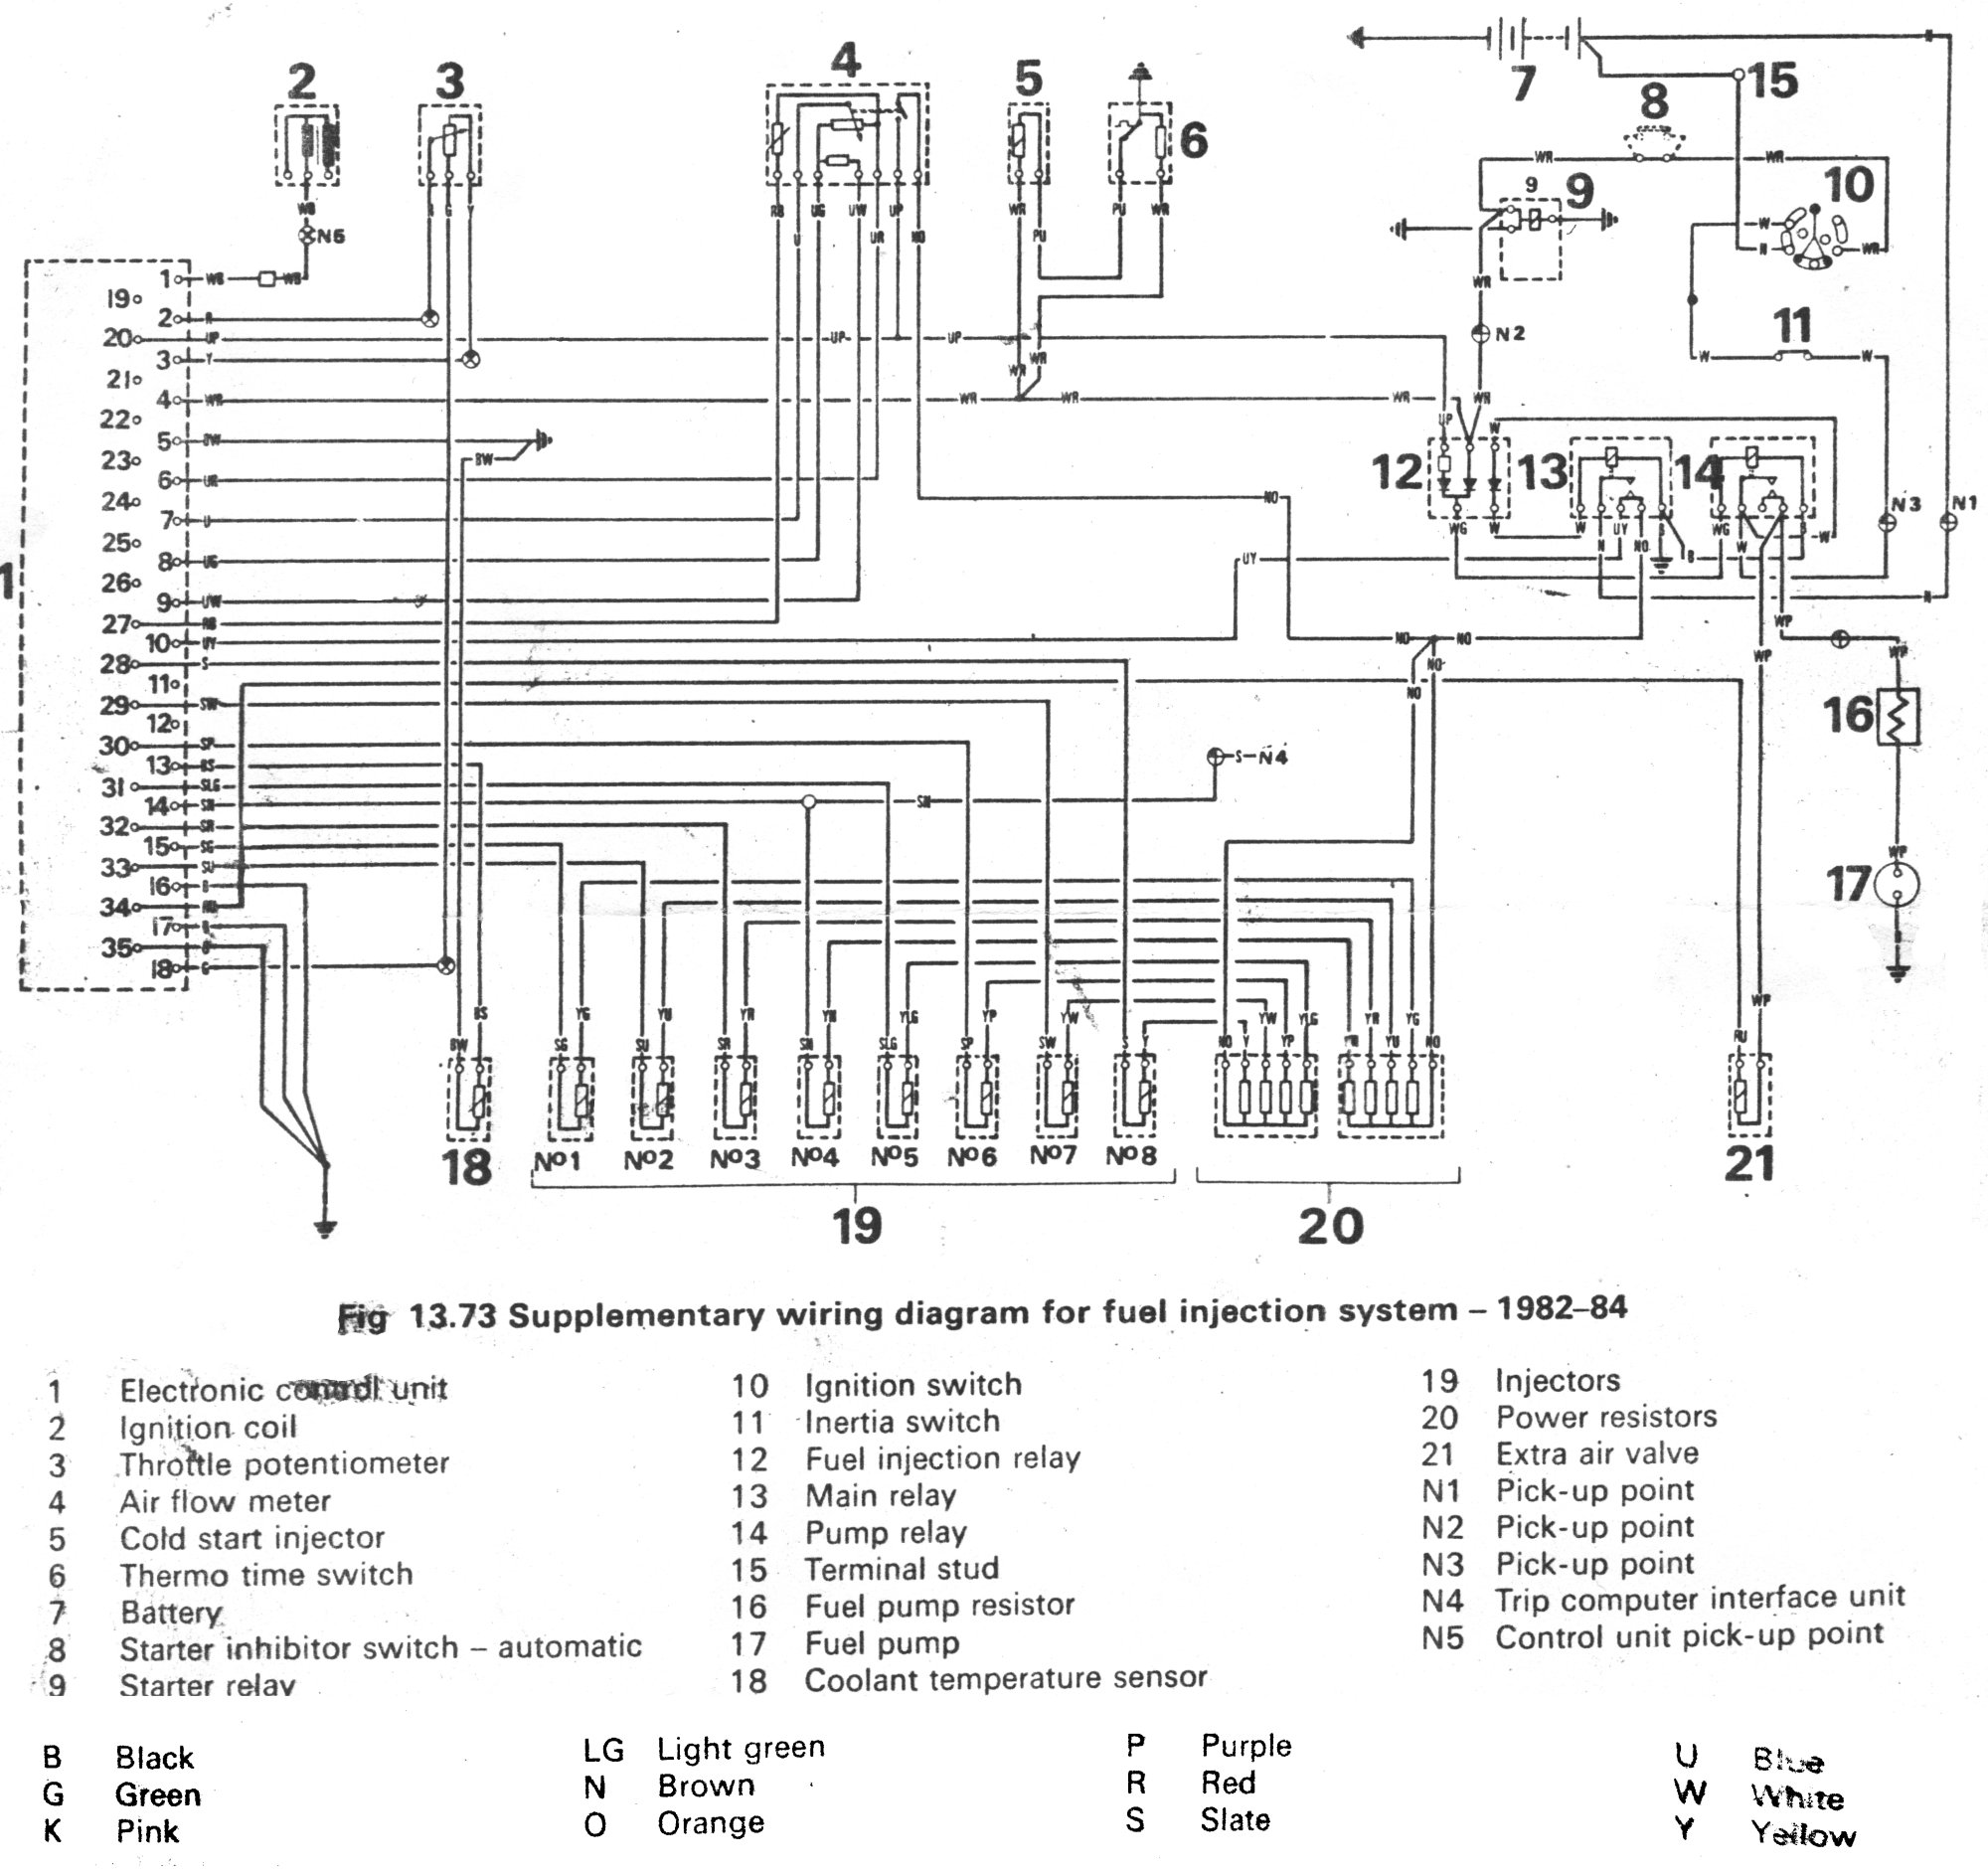 1999 ford ranger xlt fuse box diagram TgqcMDc wiring diagram for car 1998 ford f 150 wiring diagram 1999 ford ranger ignition wiring diagram at crackthecode.co